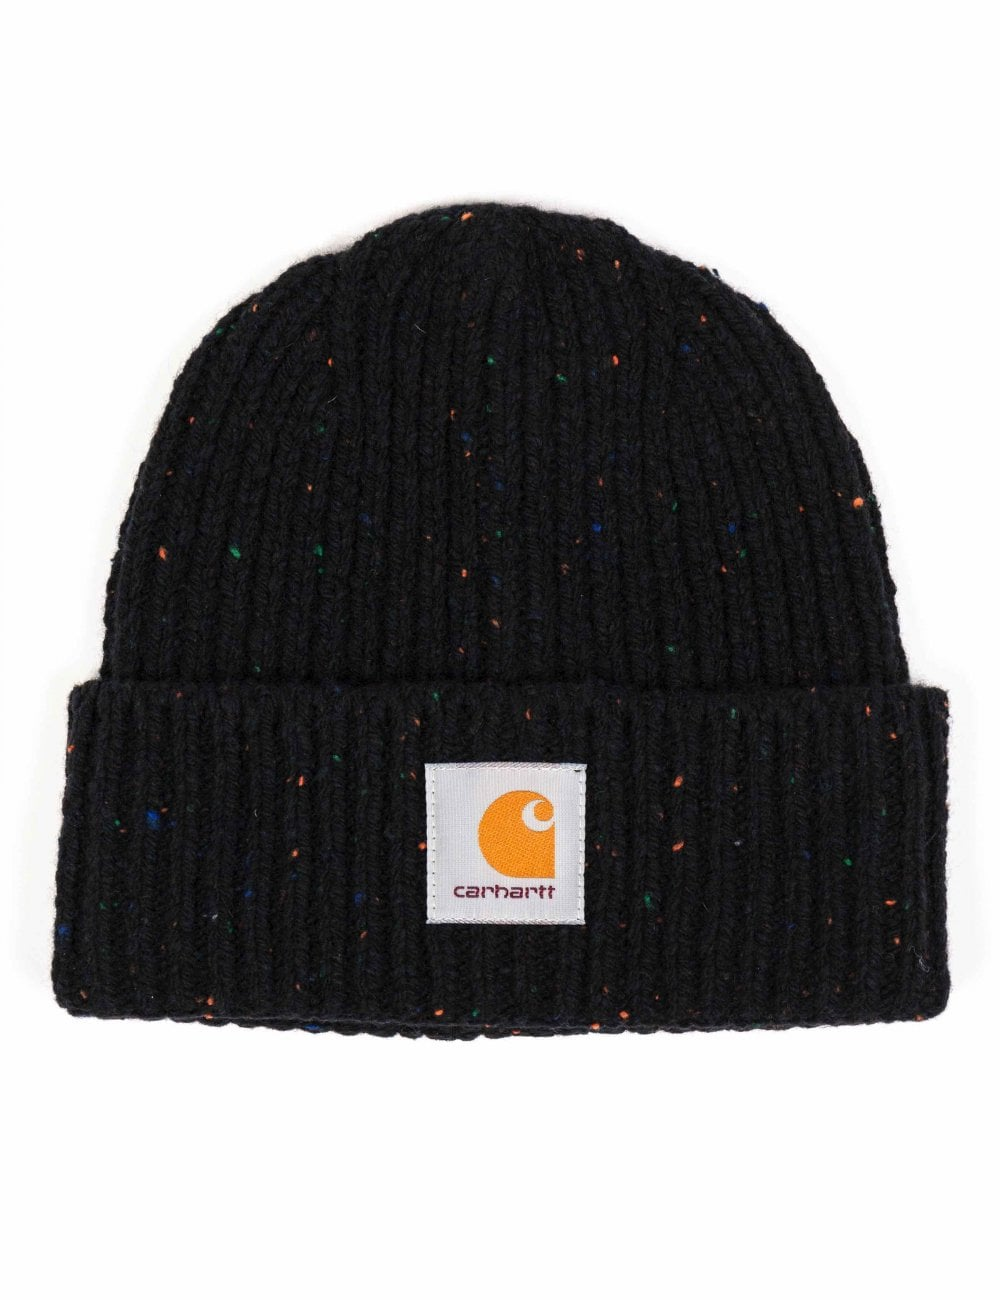 Carhartt WIP Anglistic Beanie Hat - Black Heather - Accessories from ... 75c9392c047